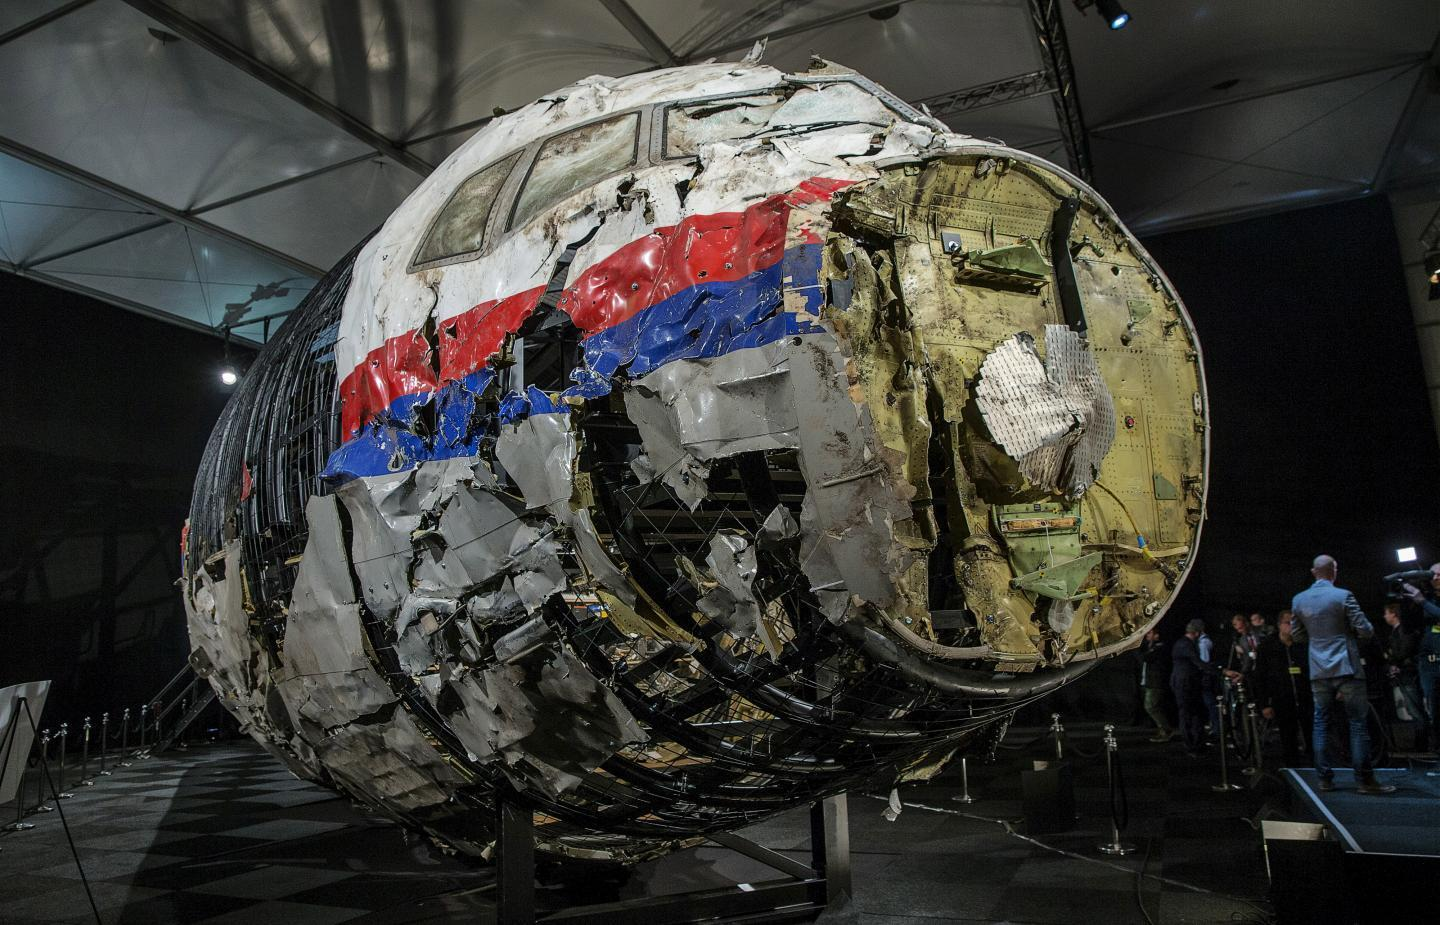 Malaysia Airlines Flight MH17 was brought down by a Russian military unit, say investigators https://t.co/FXcSAzqgal https://t.co/hYG2dXwWfc